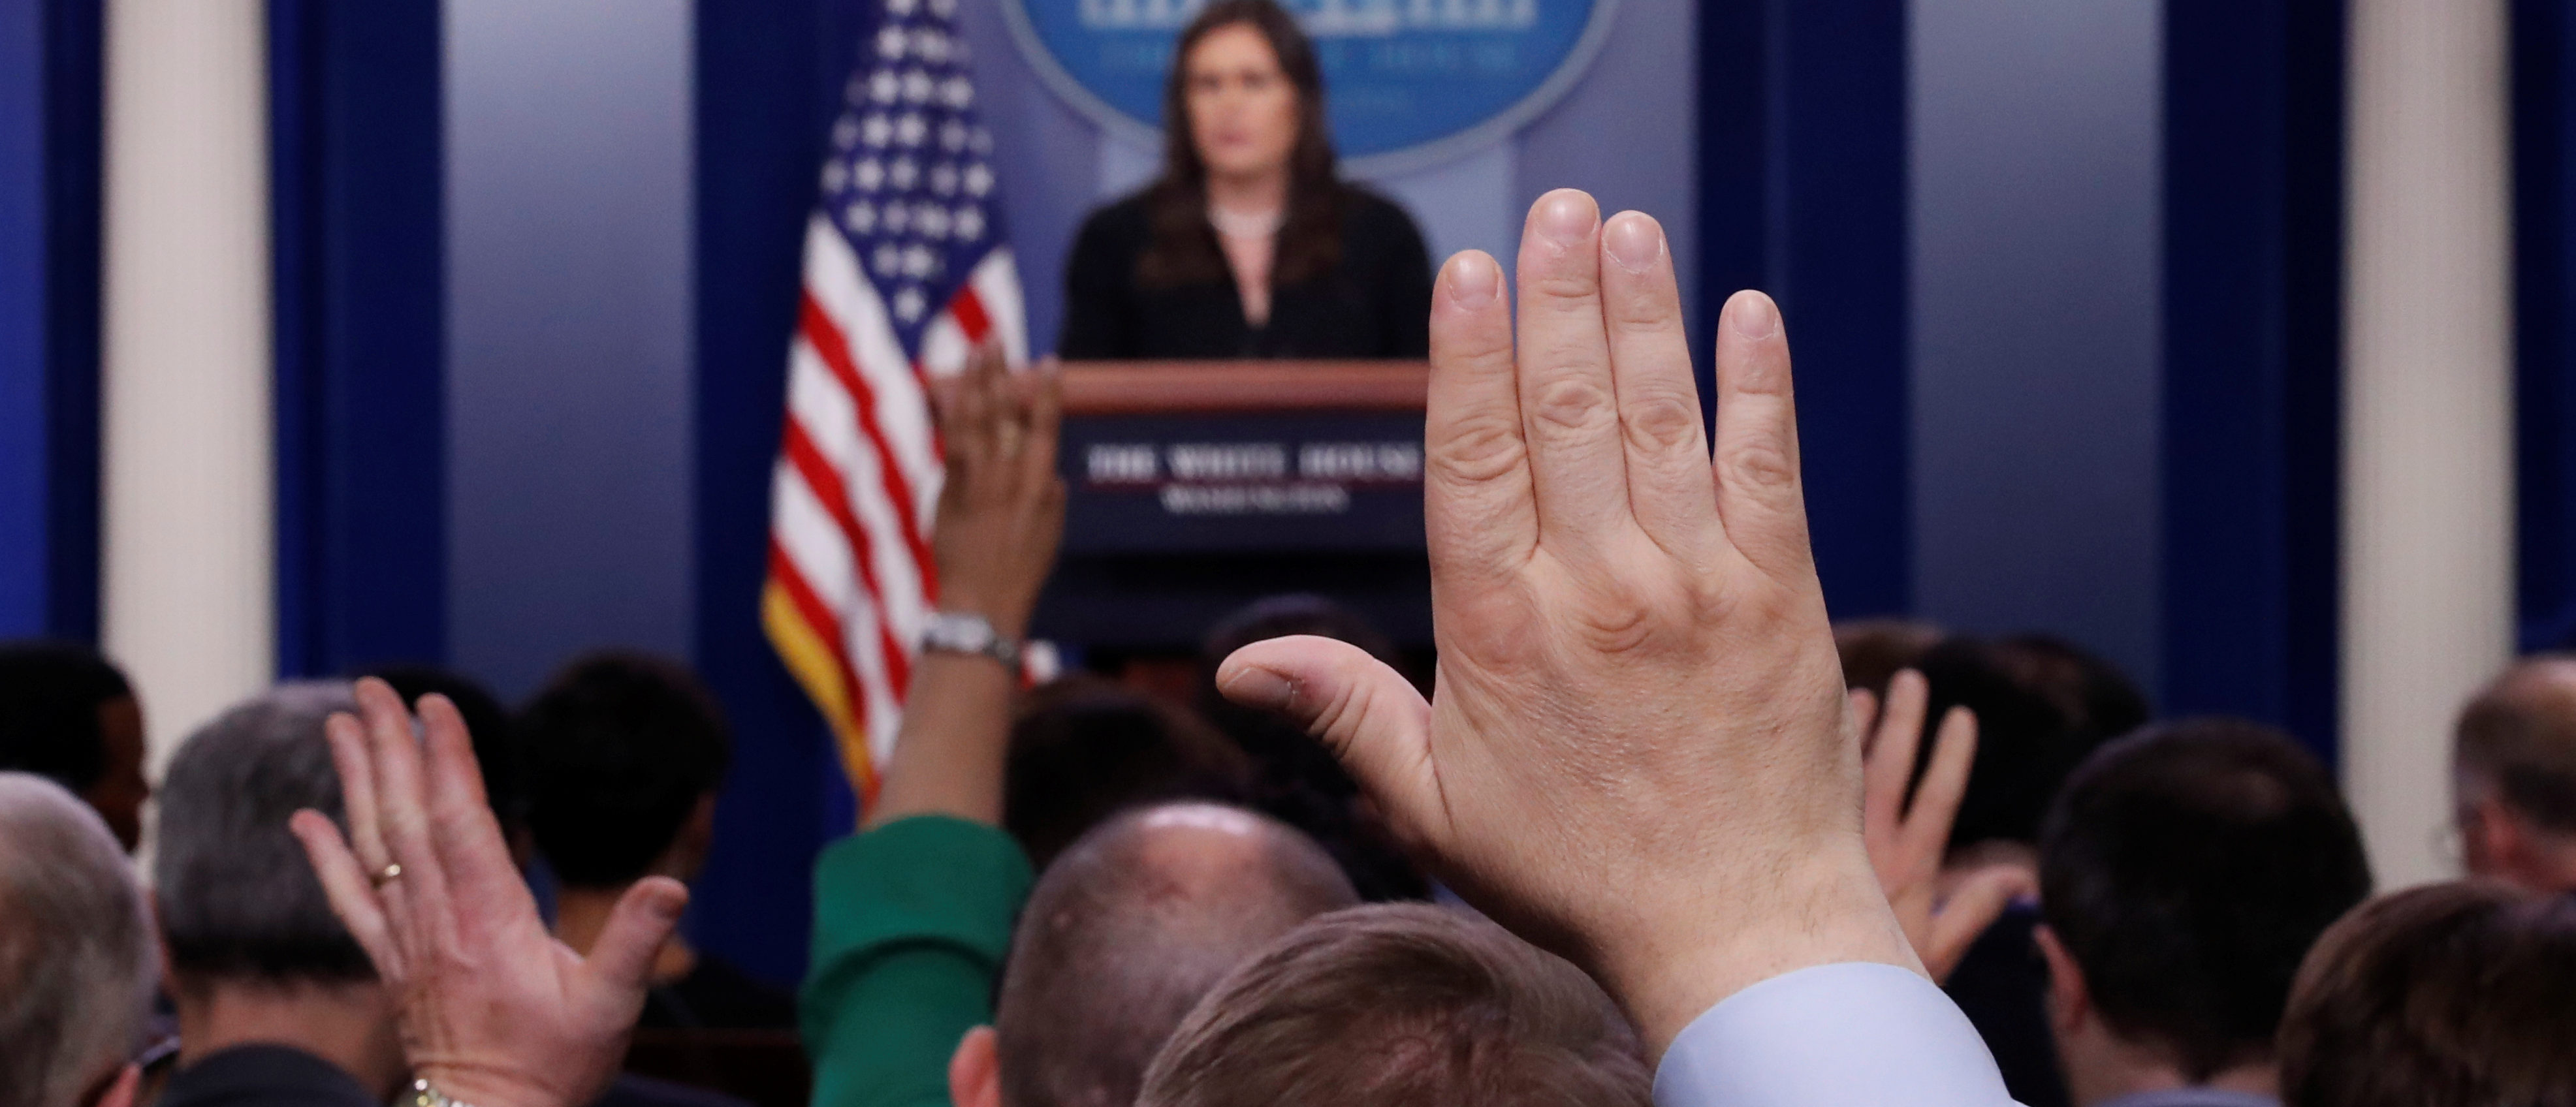 Members of the news media raise their hands to ask questions of White House Press Secretary Sarah Huckabee Sanders during a daily briefing at the White House in Washington, March 12, 2018. REUTERS/Leah Millis